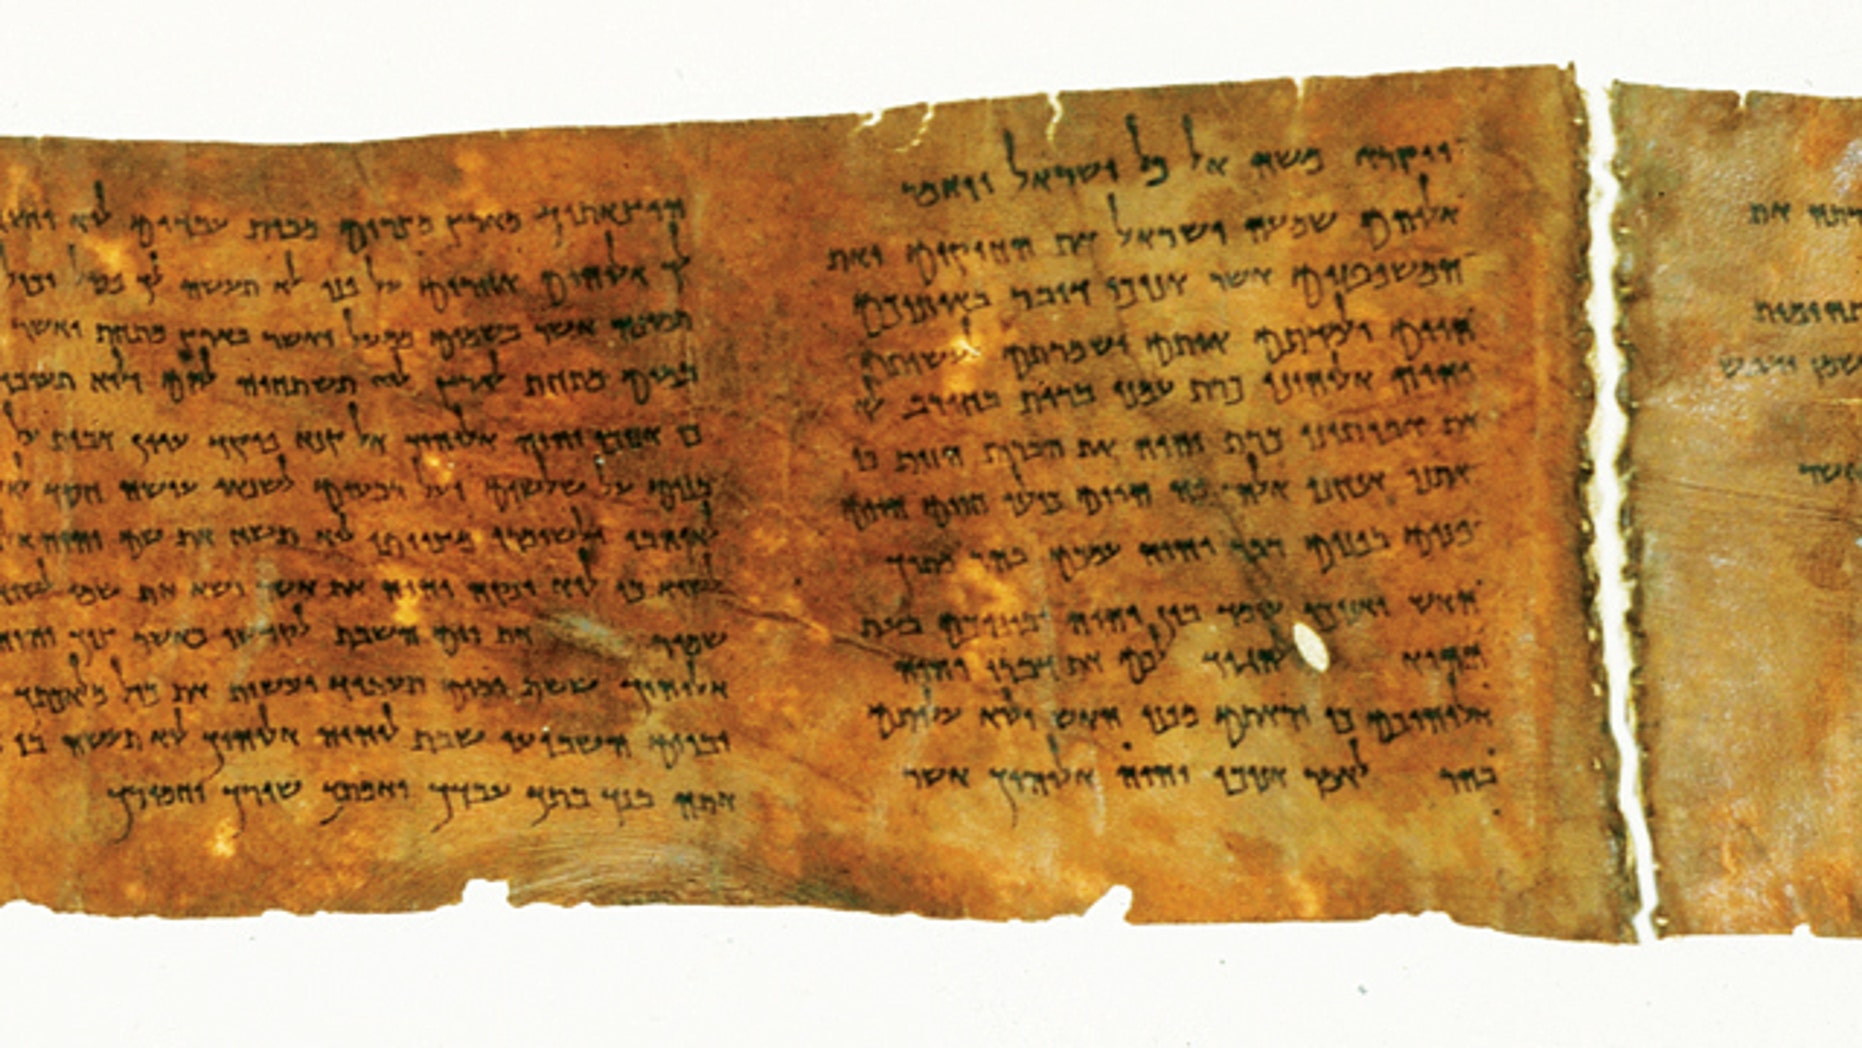 A portion of the oldest complete copy of the Ten Commandments, on display potentially for the final time in New York CIty's Times Square.